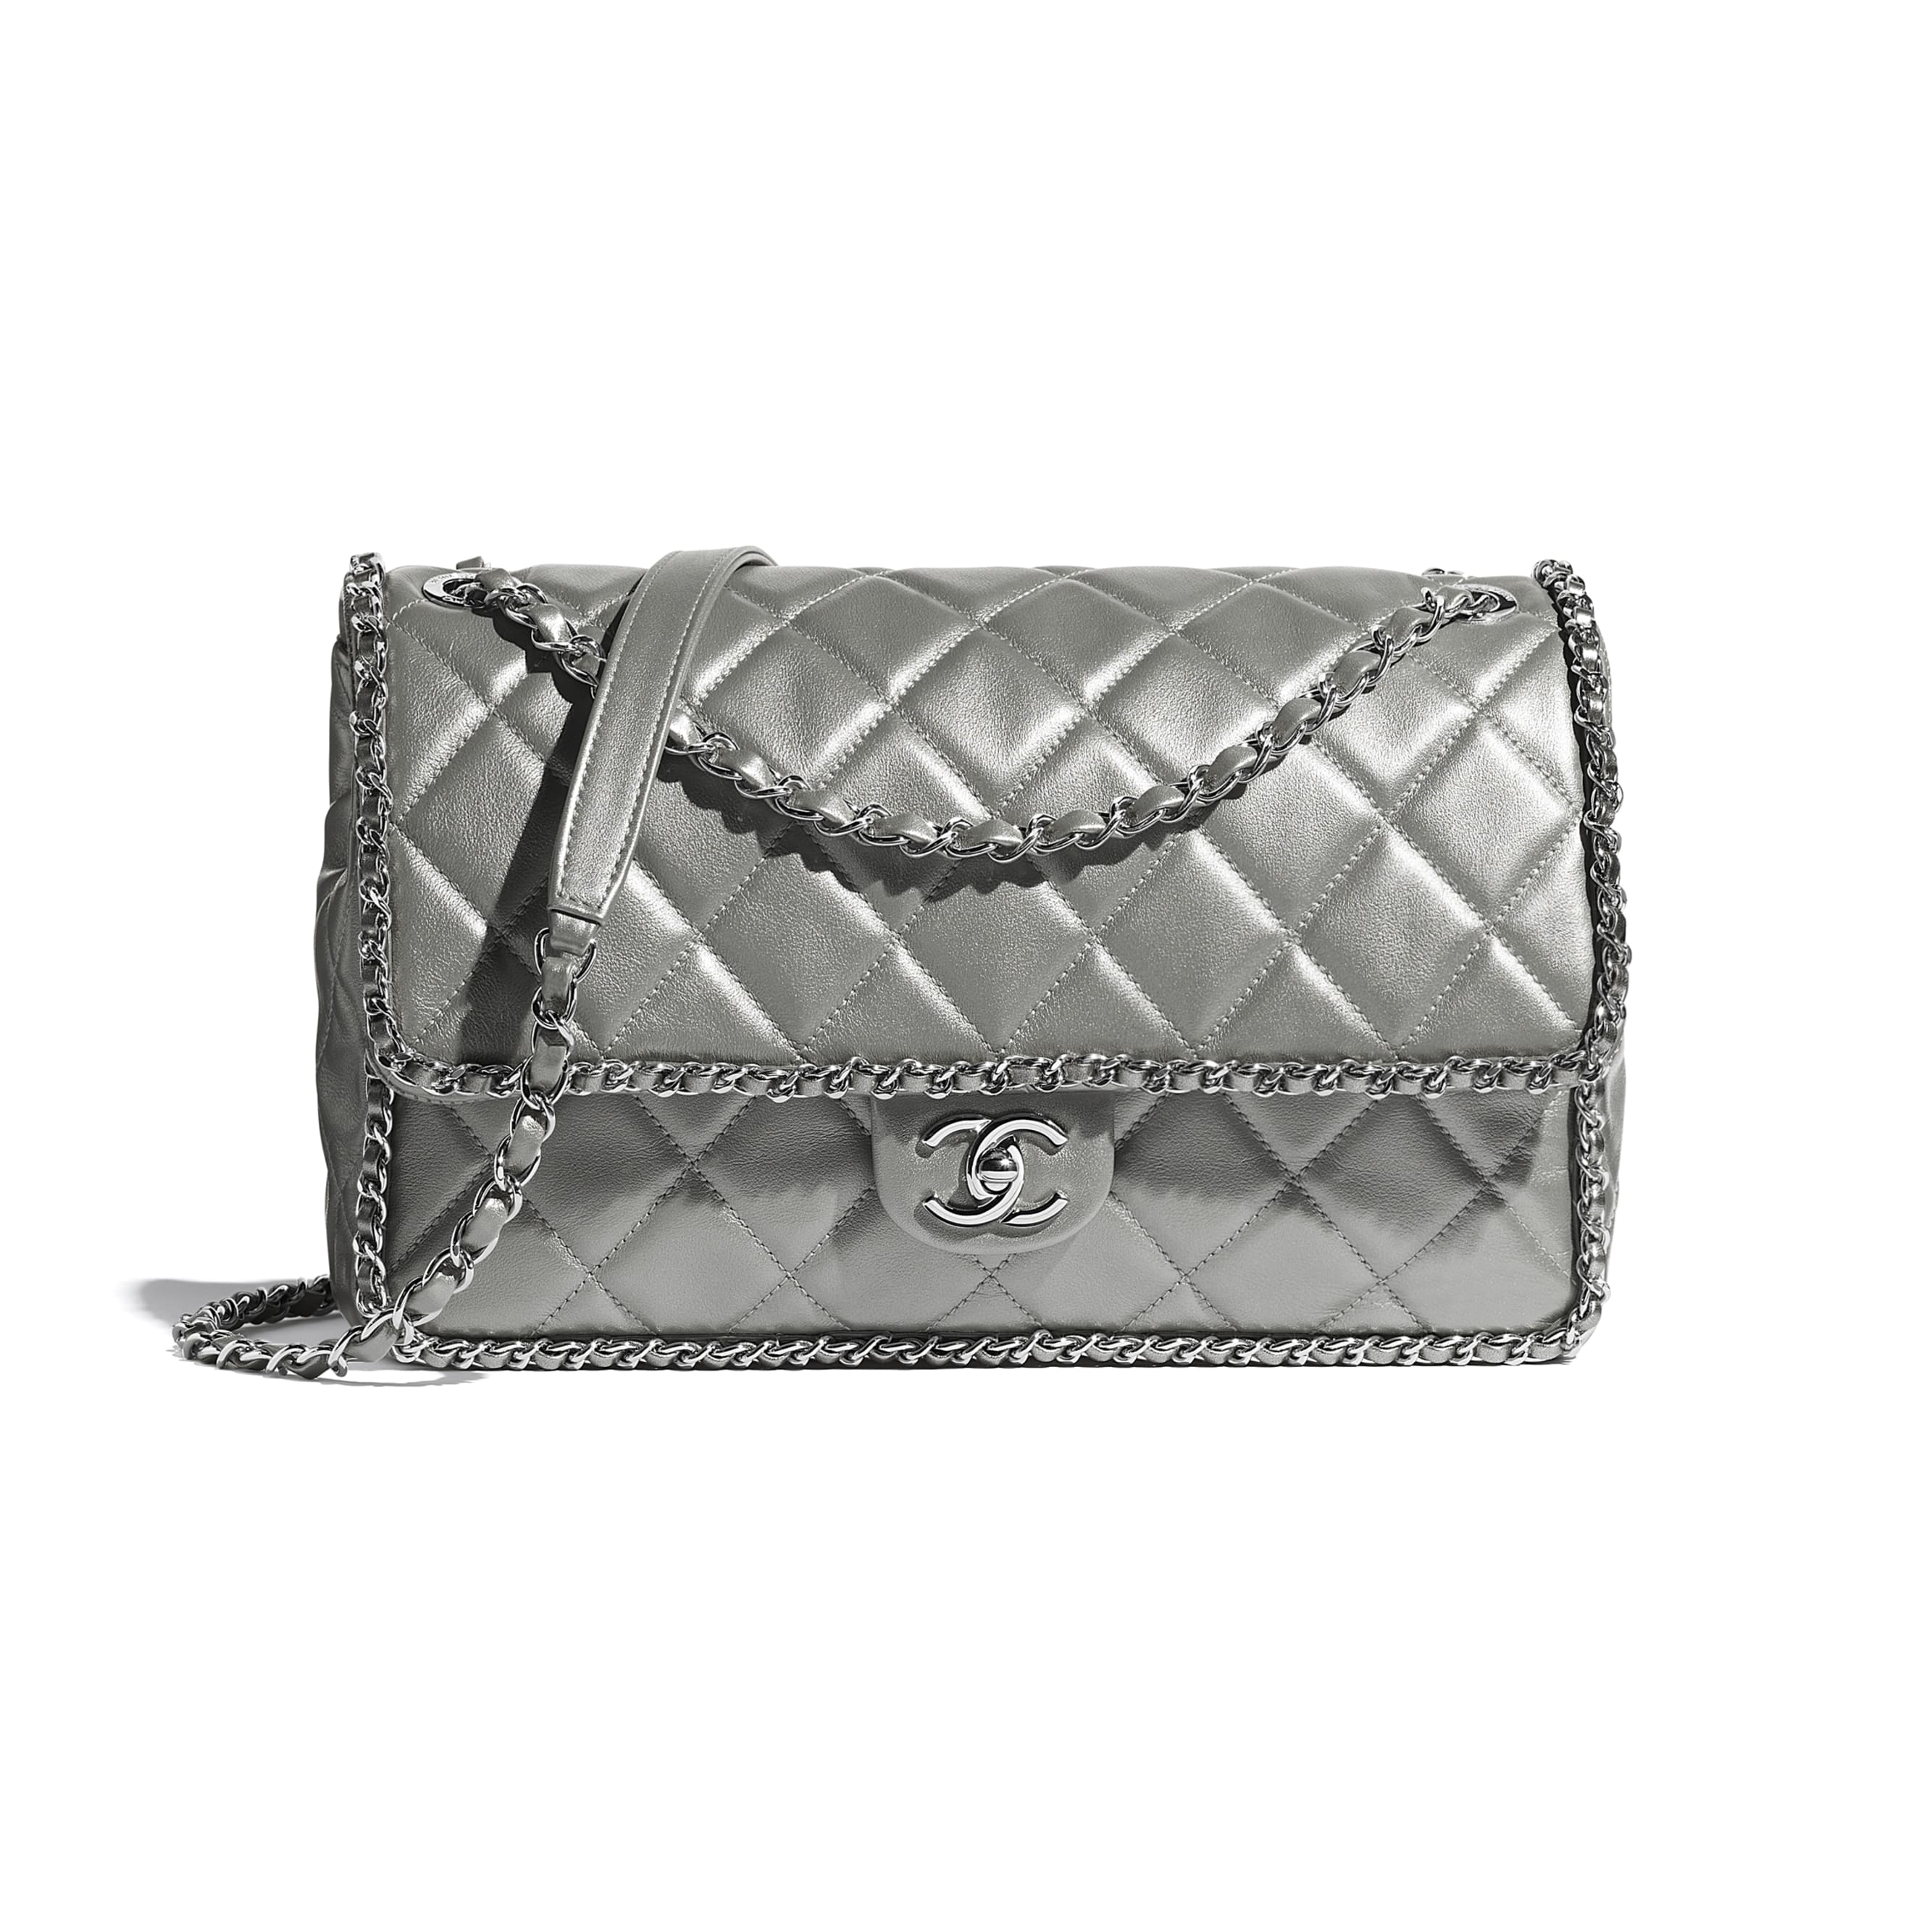 Large Flap Bag - Silver - Metallic Calfskin & Silver-Tone Metal - CHANEL - Default view - see standard sized version